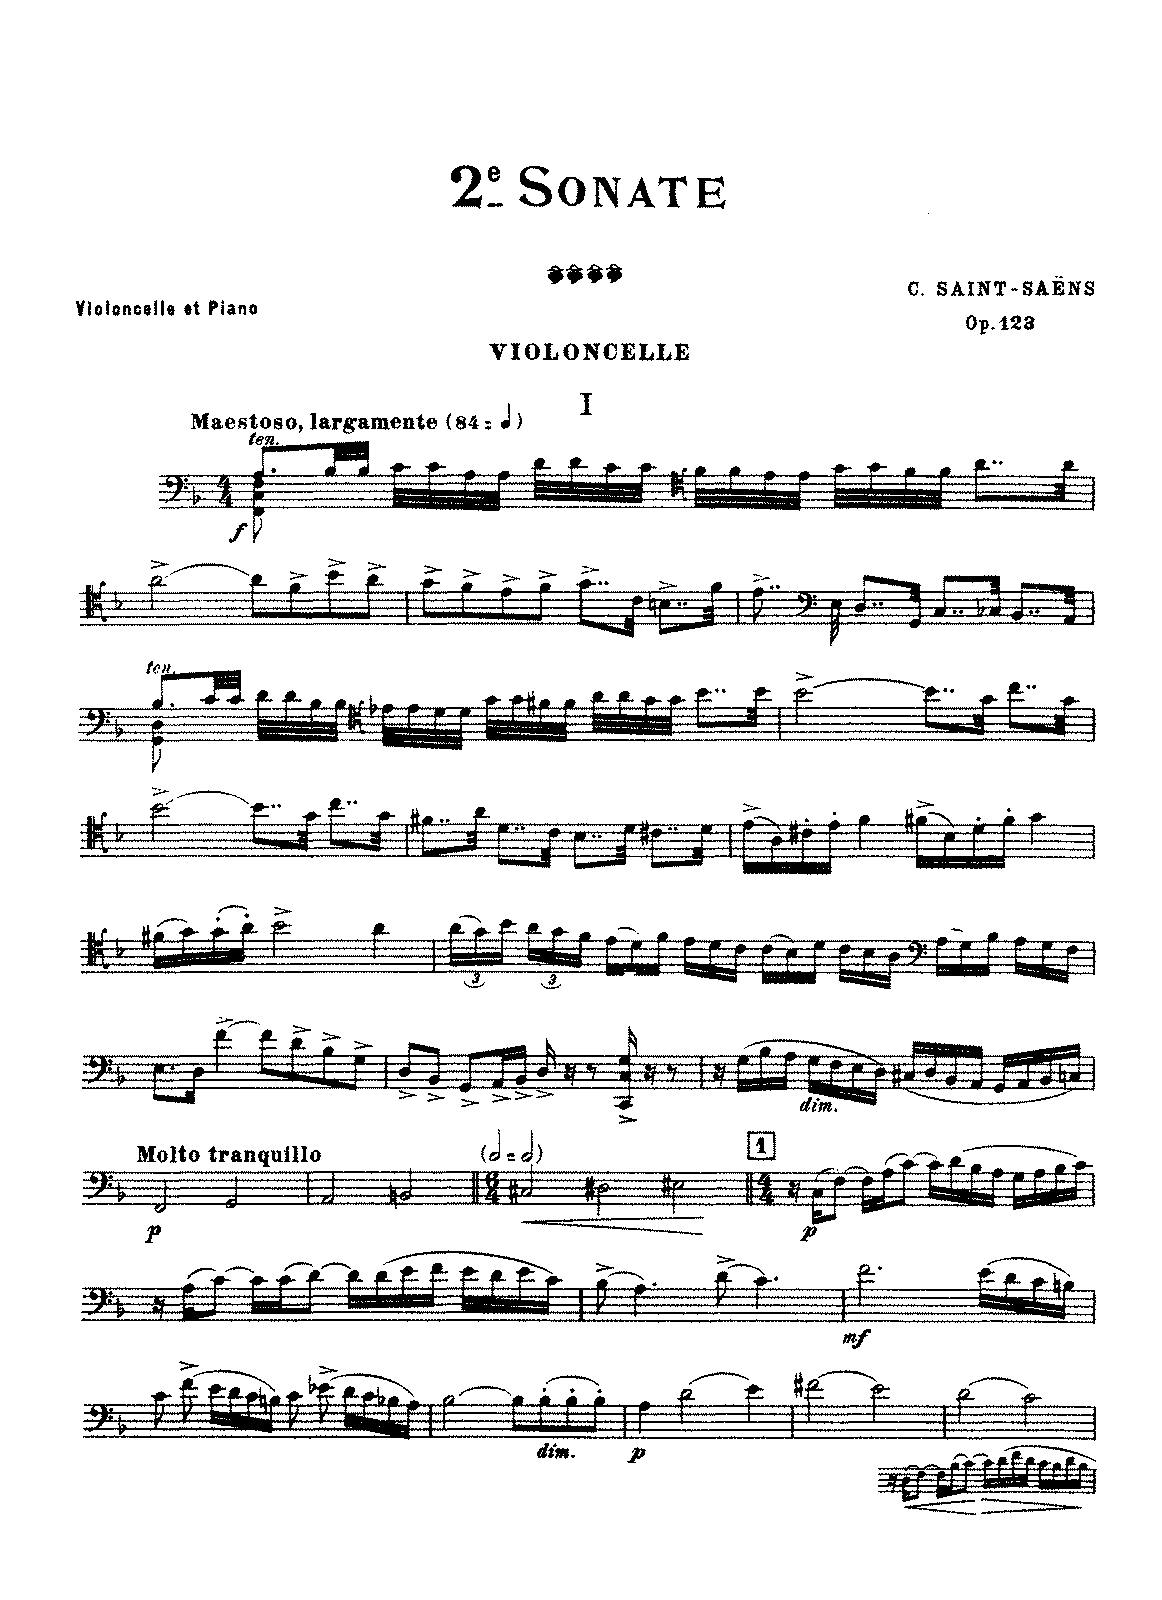 PMLP66872-Saint-Saëns - Cello Sonata No. 2, Op. 123.pdf